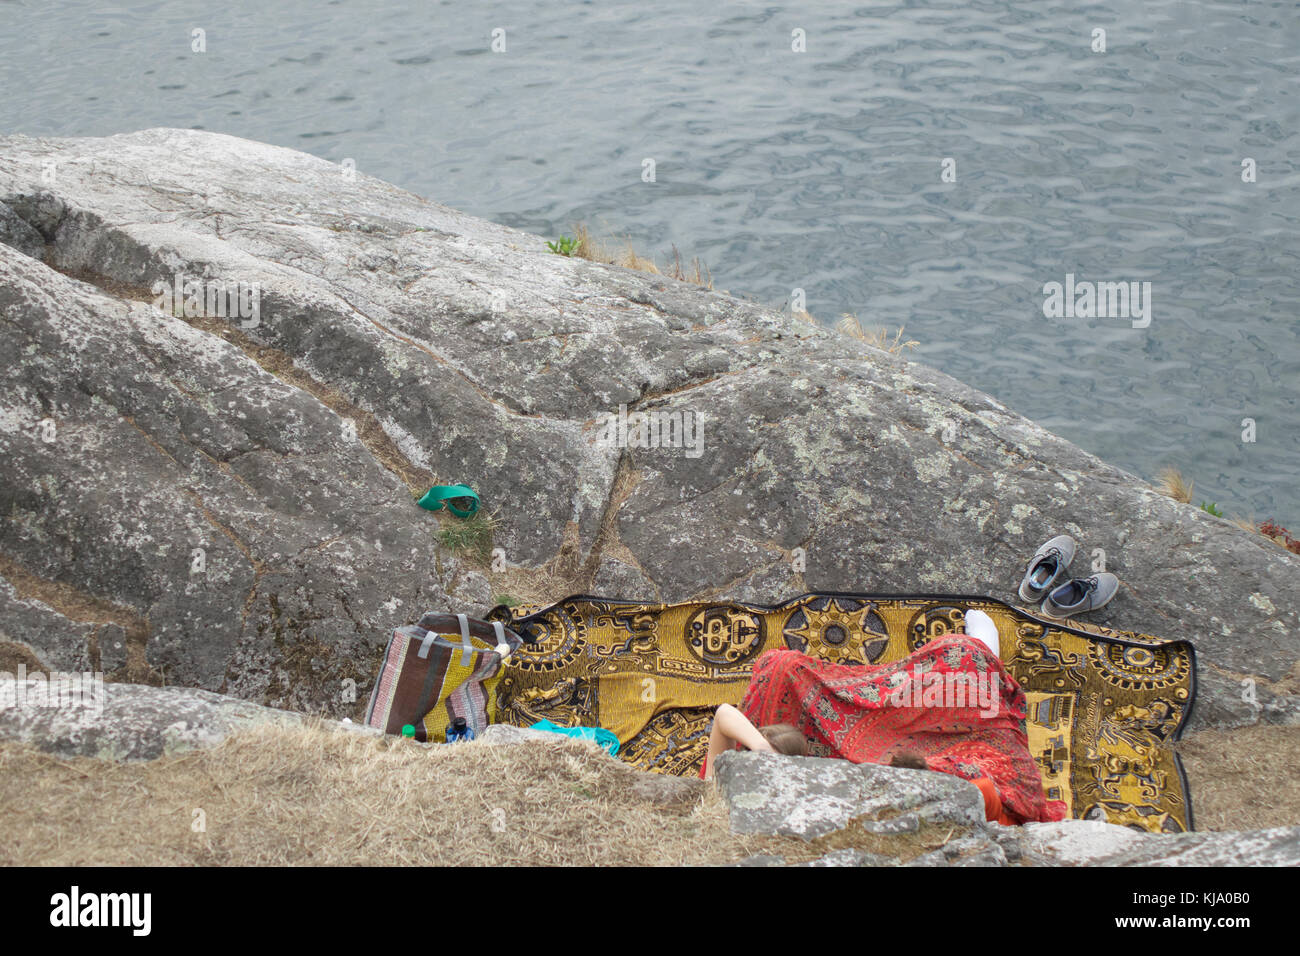 Looking down at partial view of 2 unrecognizable people seated on a colorful patterned blanket on a rock enjoying - Stock Image